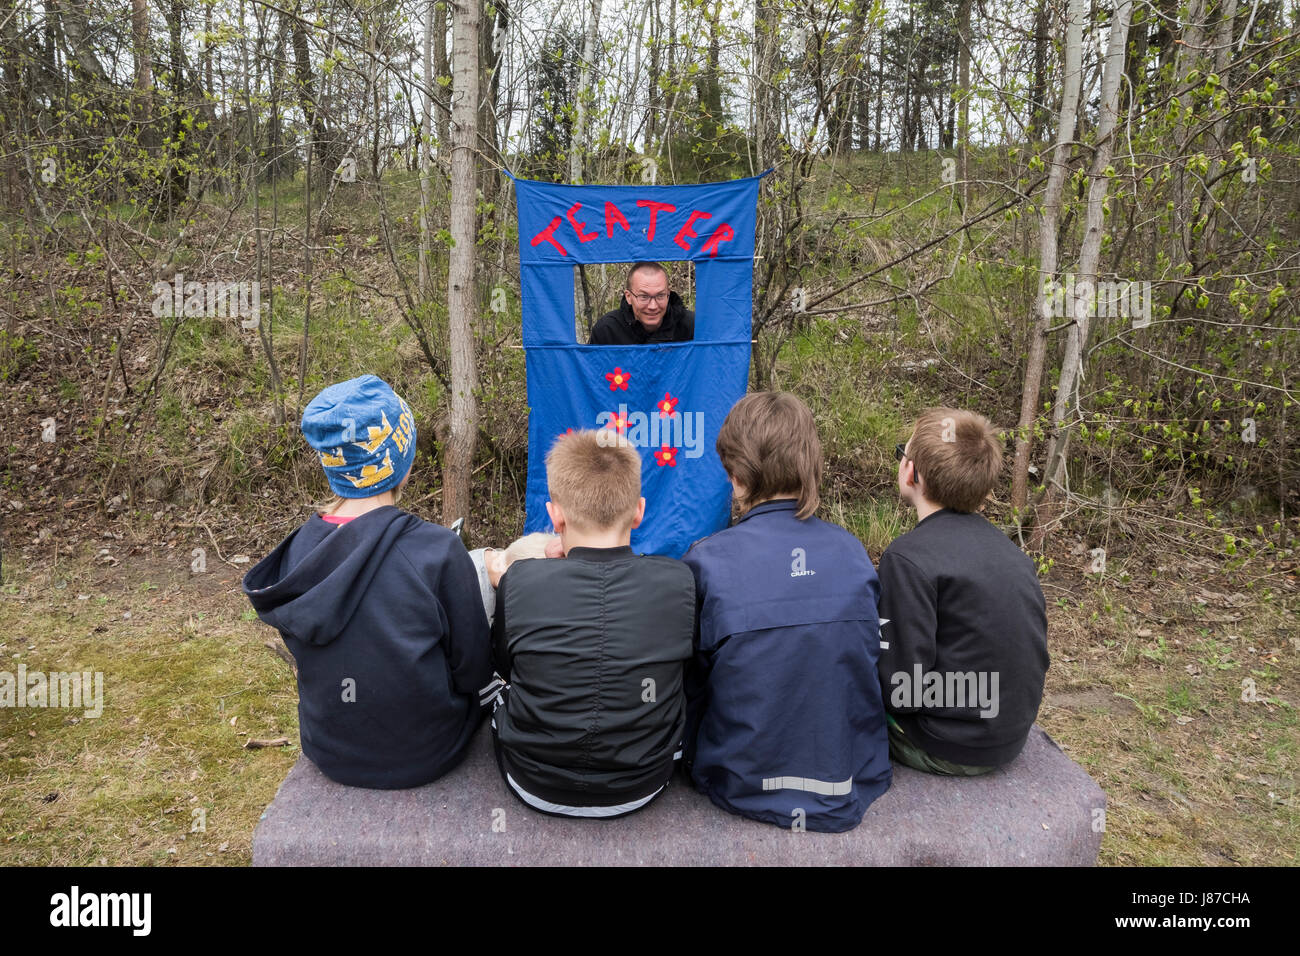 Child watching an outdoor theater, Upplands Väsby, Sweden. - Stock Image